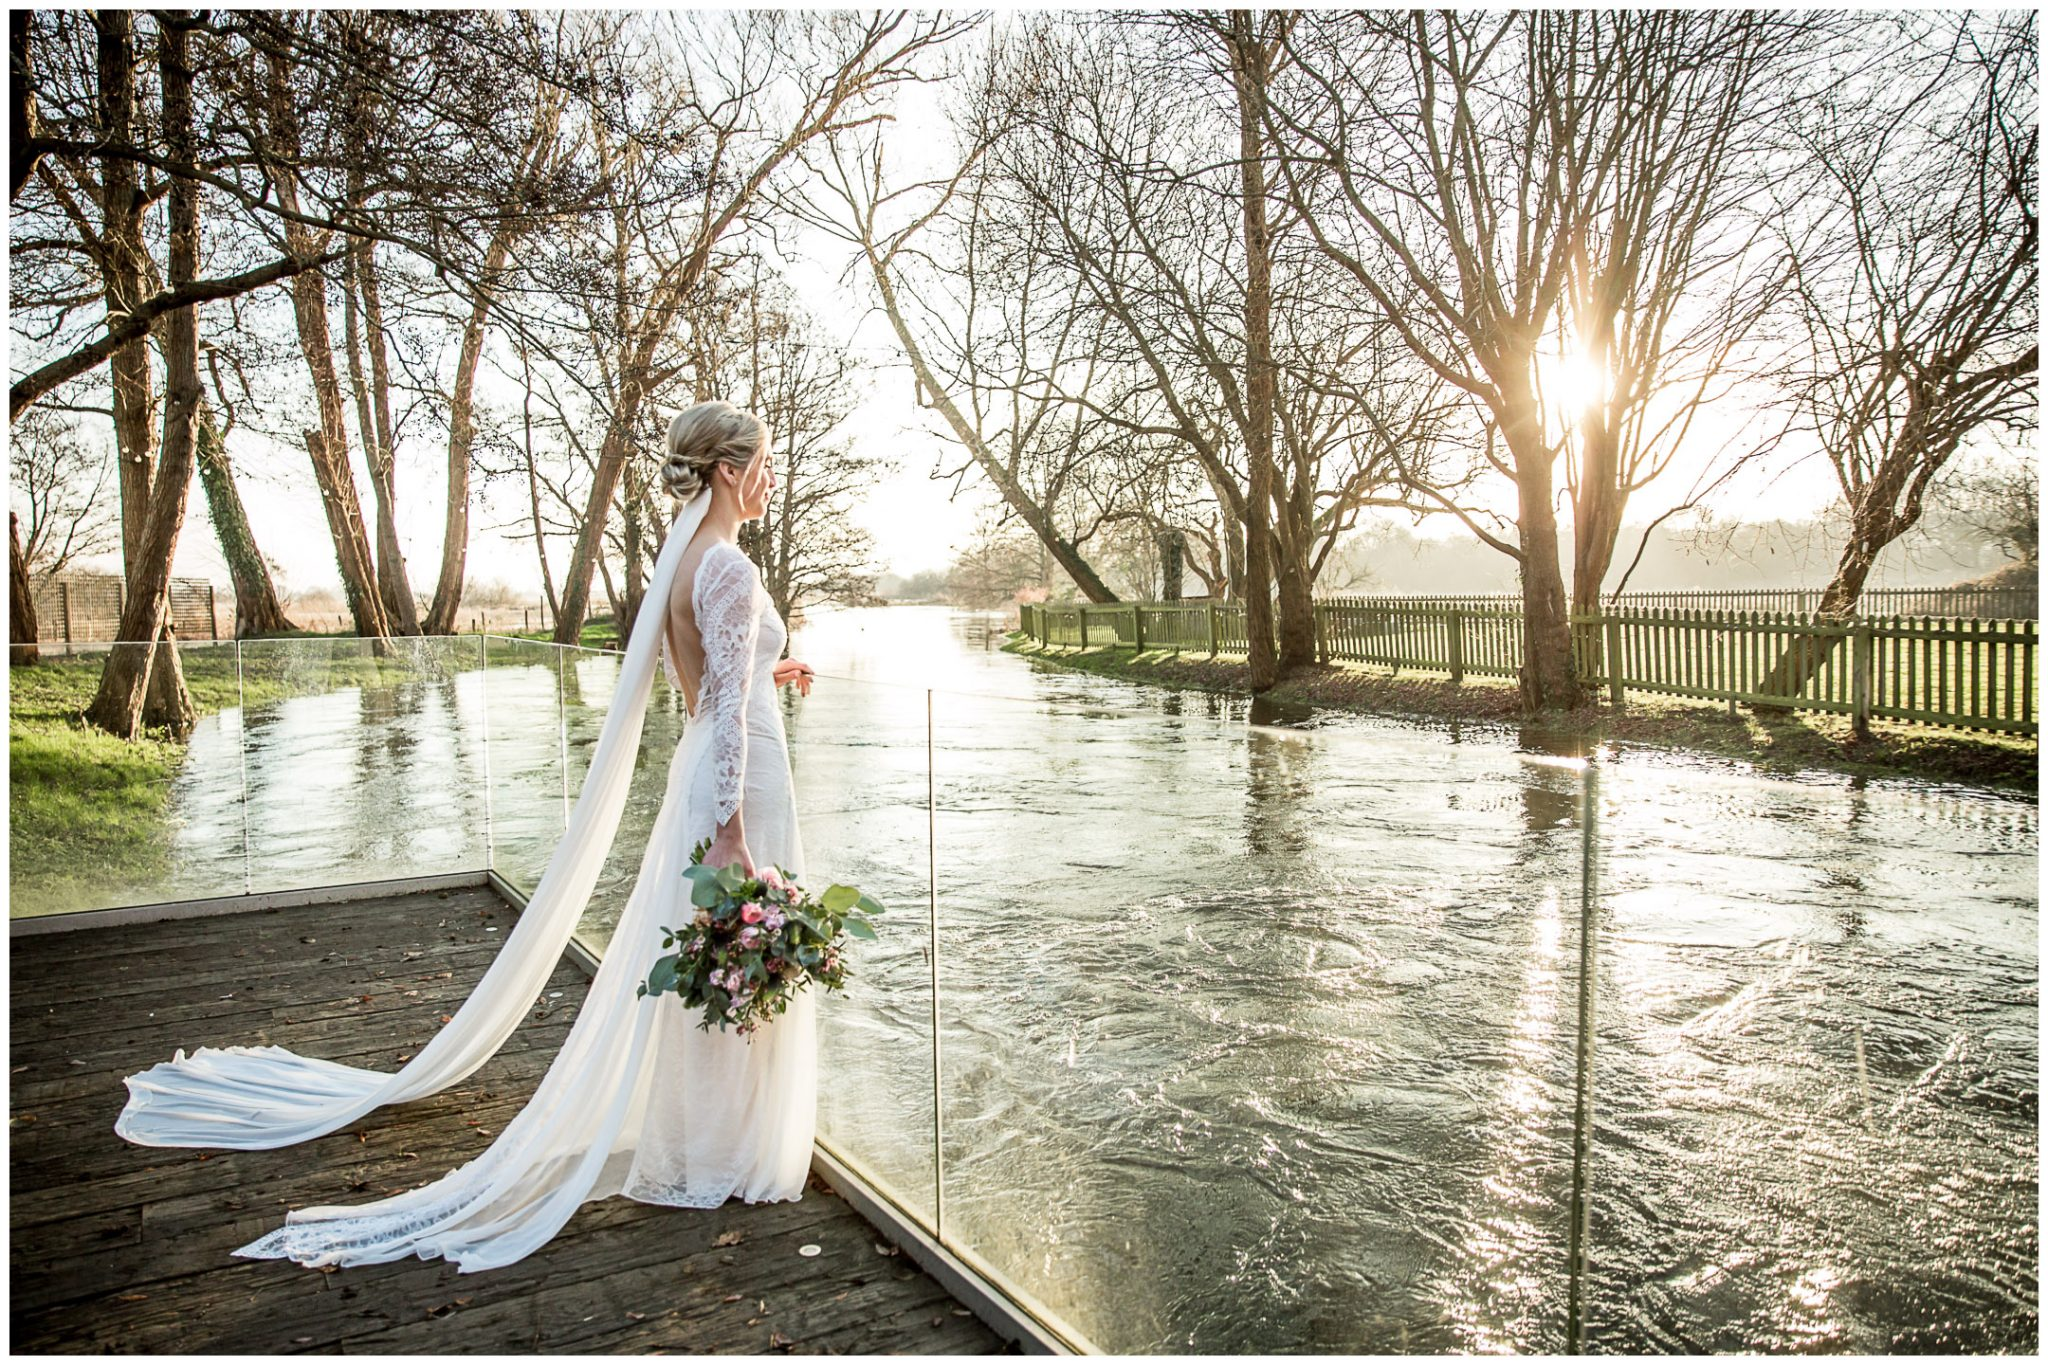 Bridal portrait looking out across the flooded river at Sopley Mill wedding venue